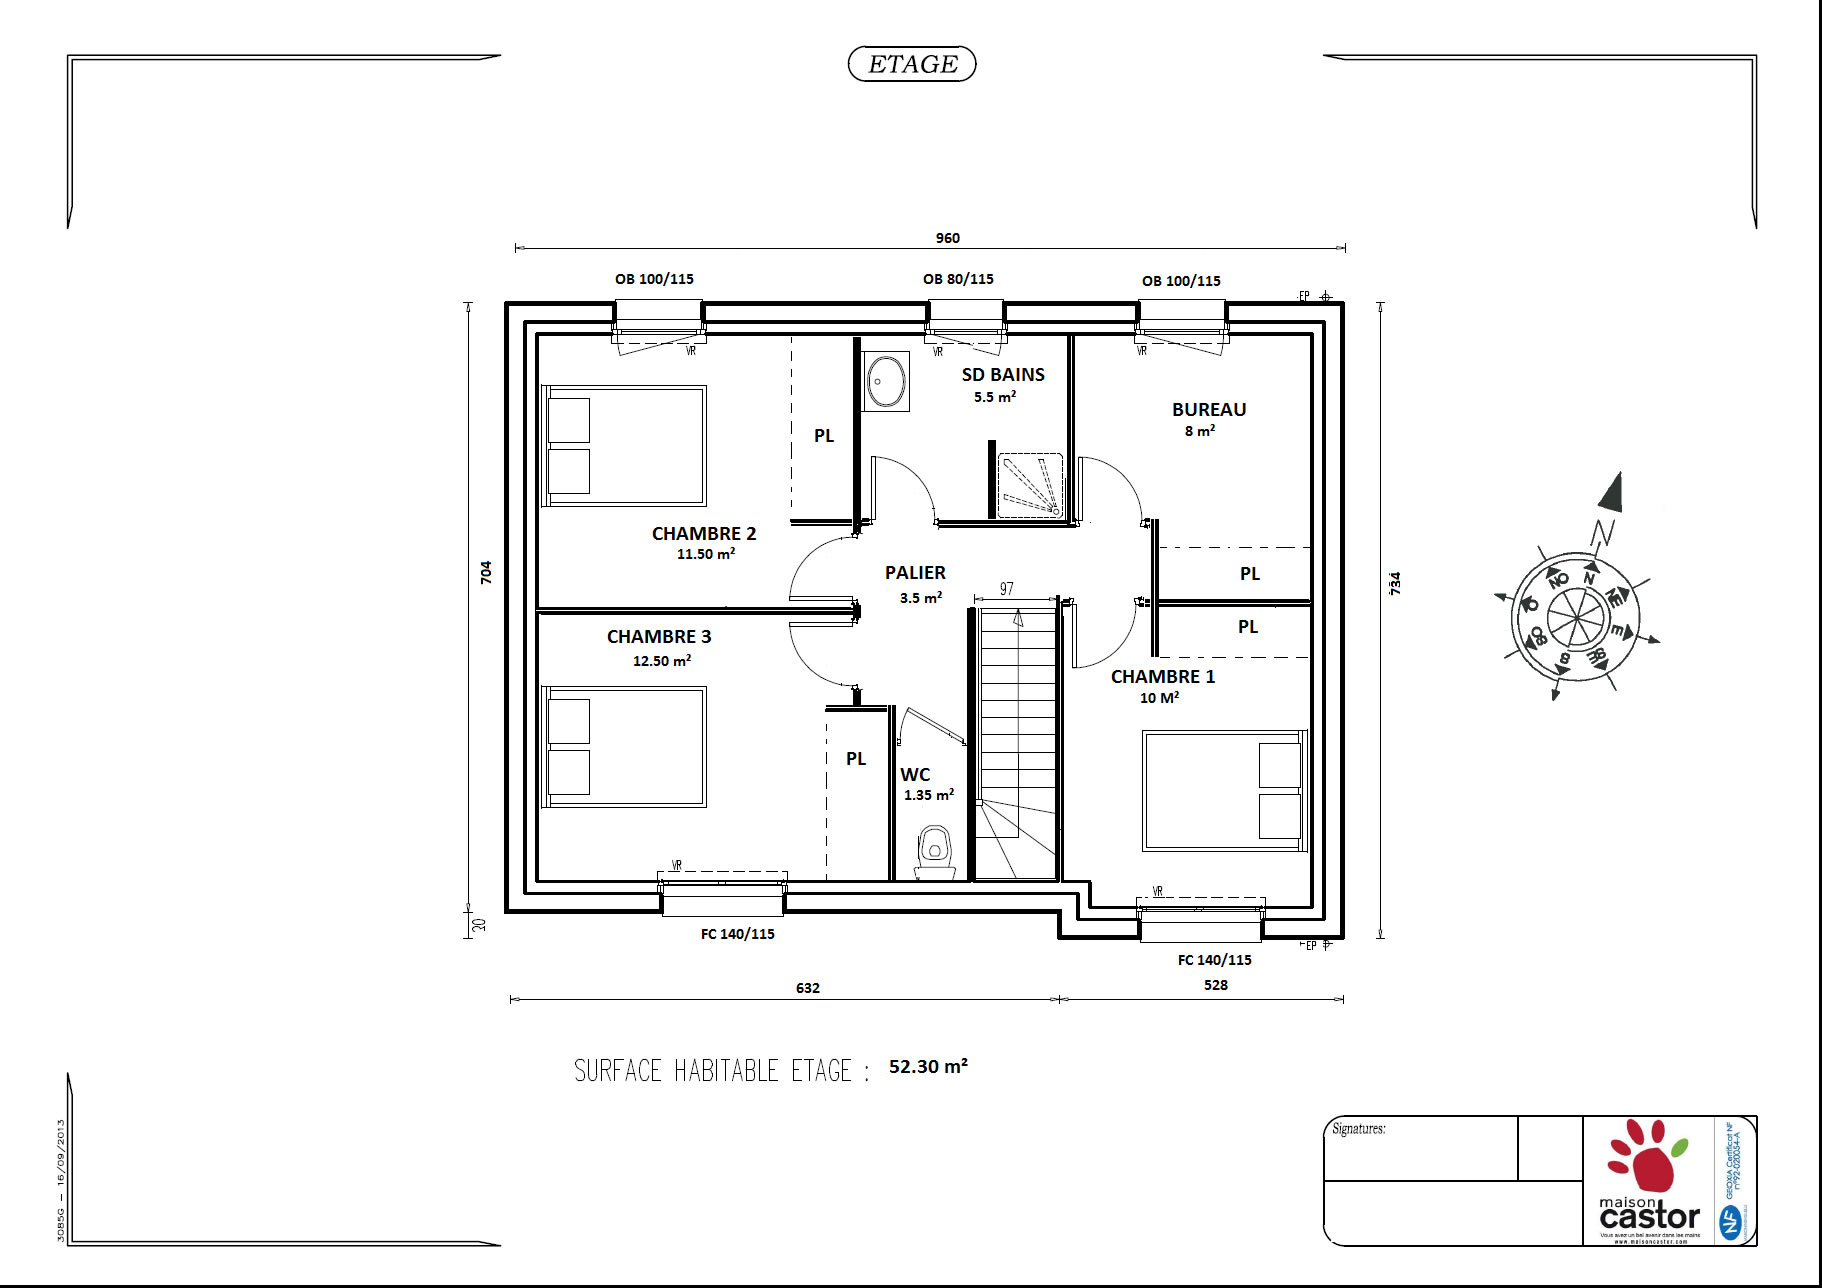 Gallery of etage plan maison architecte plan maison for Plan maison plain pied 3 chambres 1 bureau